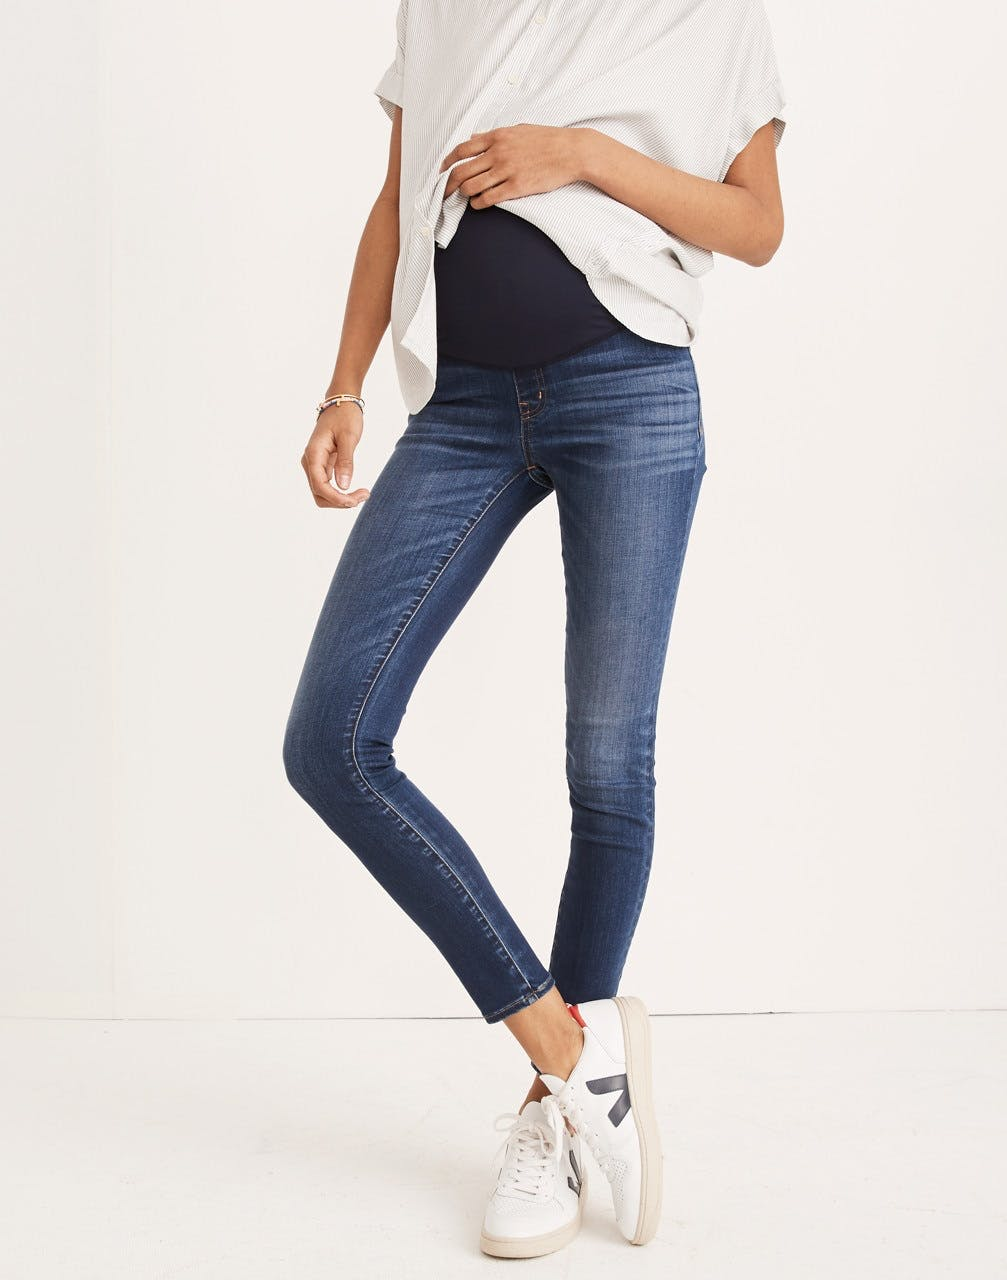 The Maternity Over-the-Belly Skinny Jeans